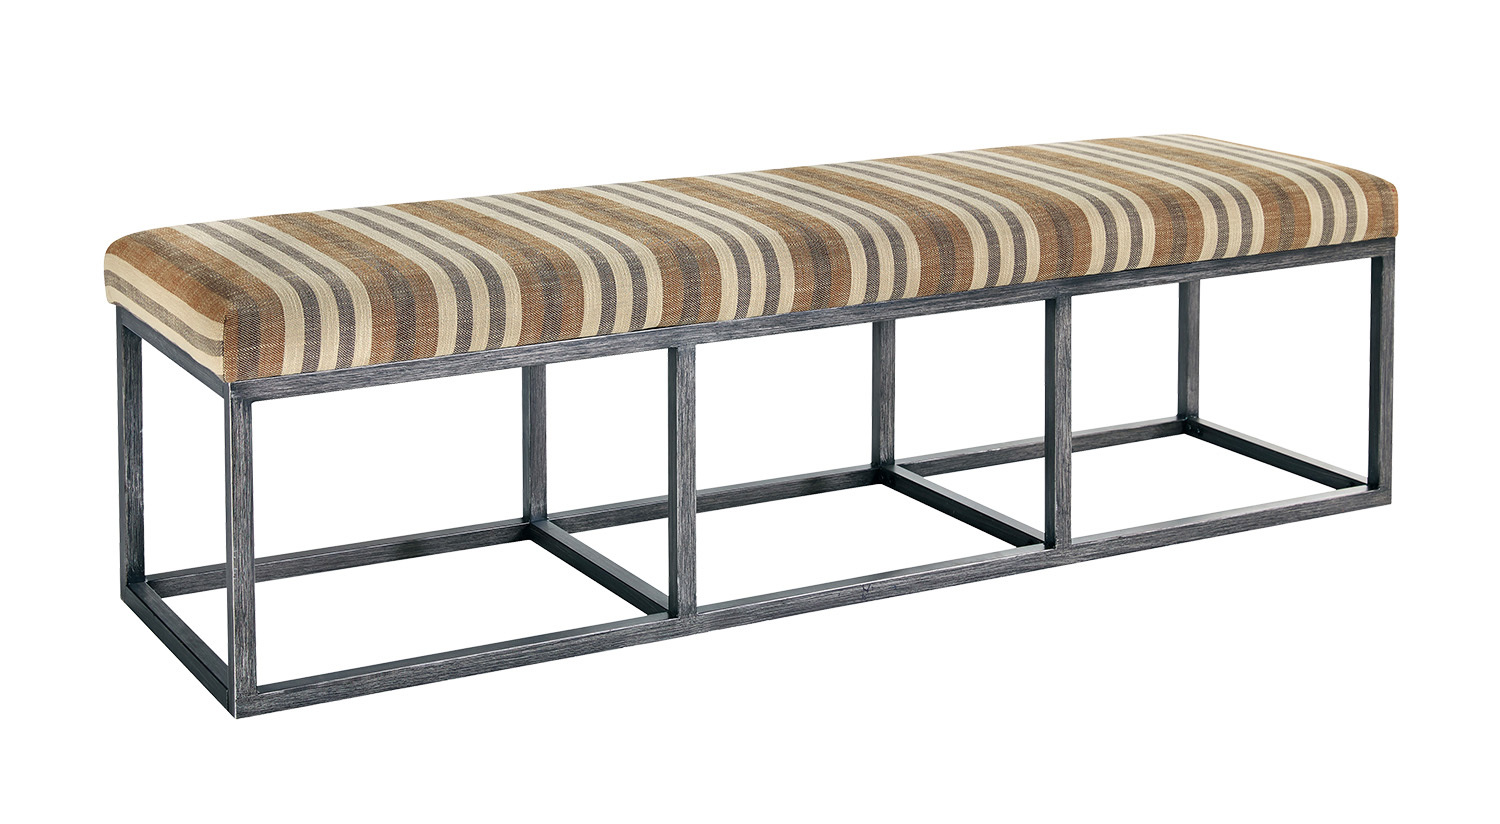 large UPH Dining room bench D588 00.jpg